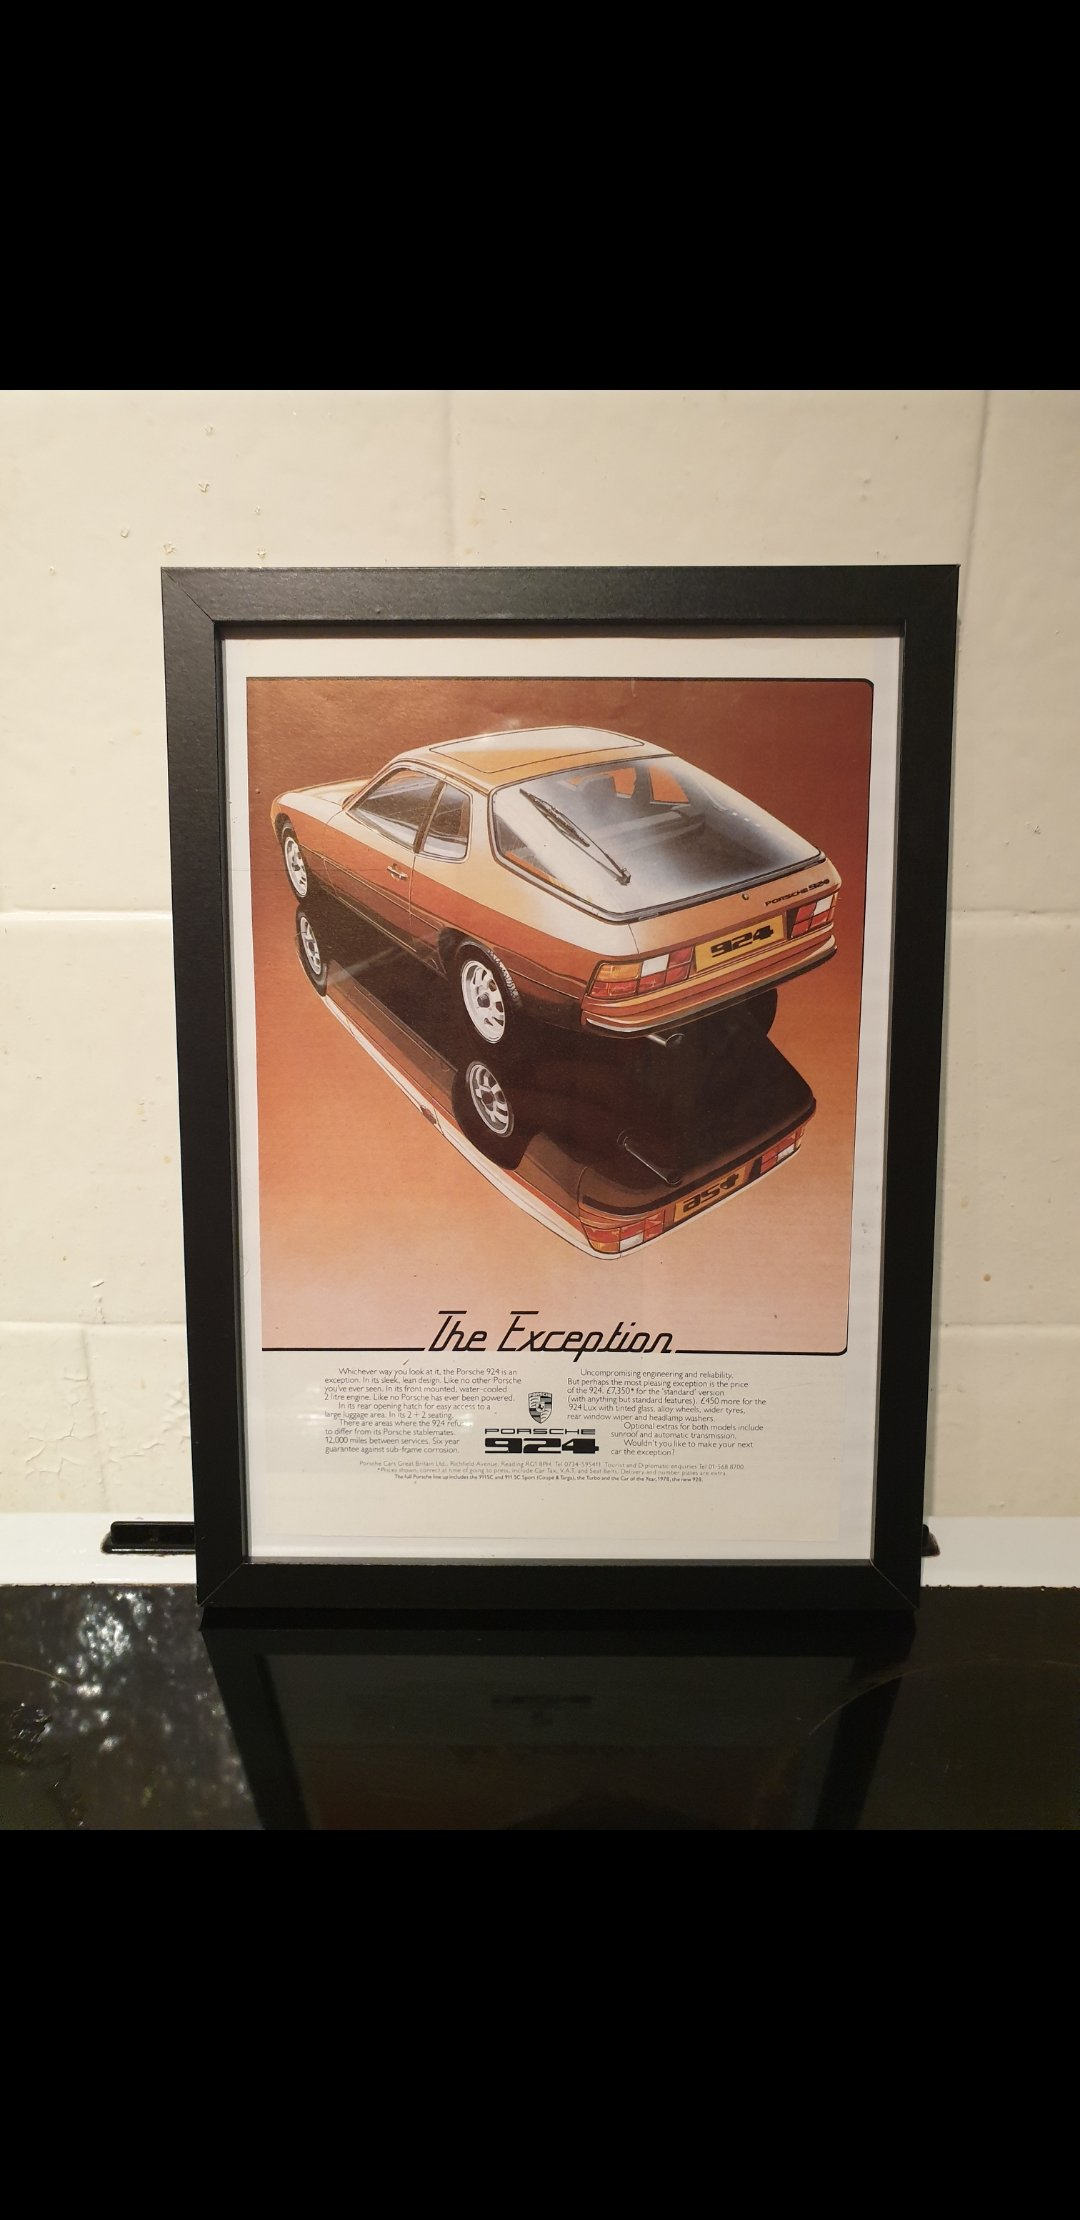 1978 Porsche 924 Framed Advert Original  For Sale (picture 1 of 3)